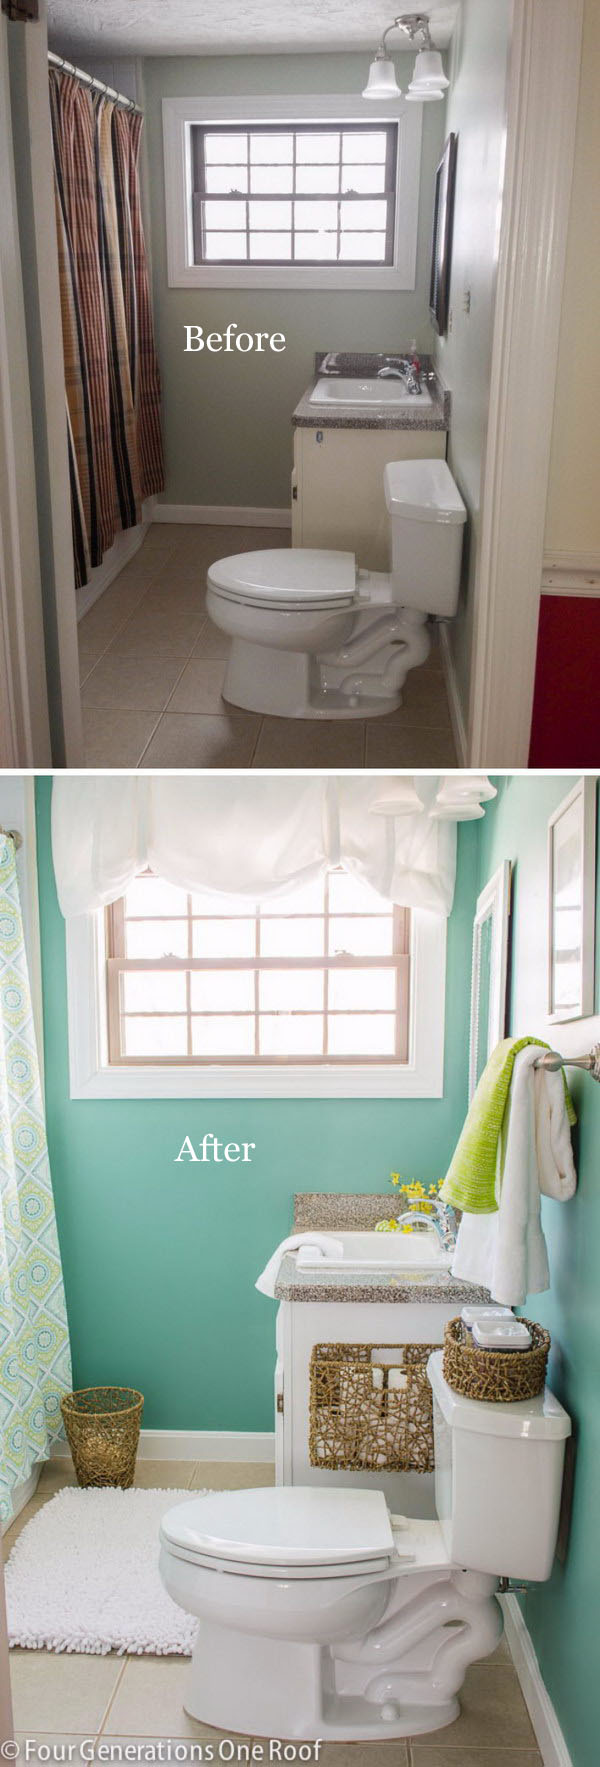 Gorgeous Bathroom Makeovers With Before And After Photos Hative - Low cost bathroom makeovers